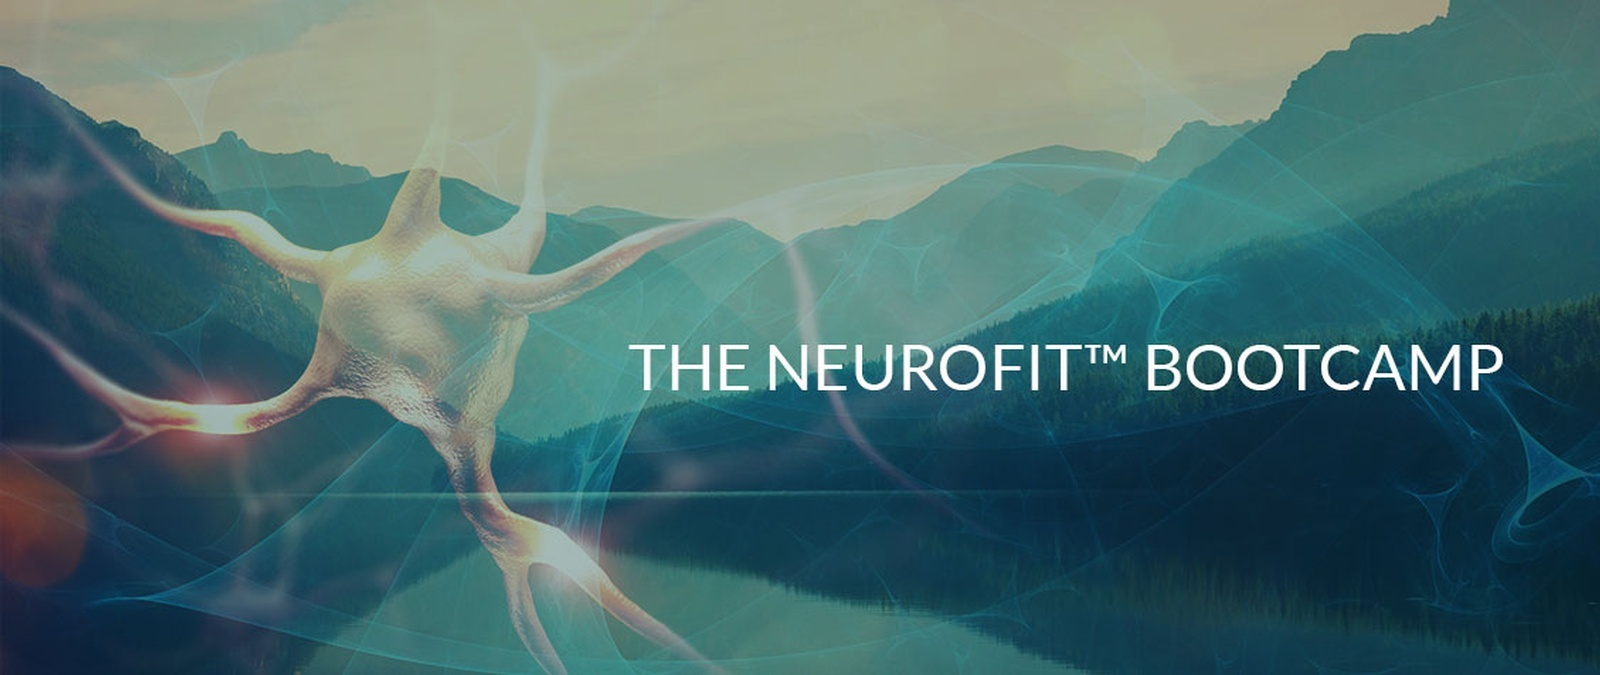 neurofit-bootcamp